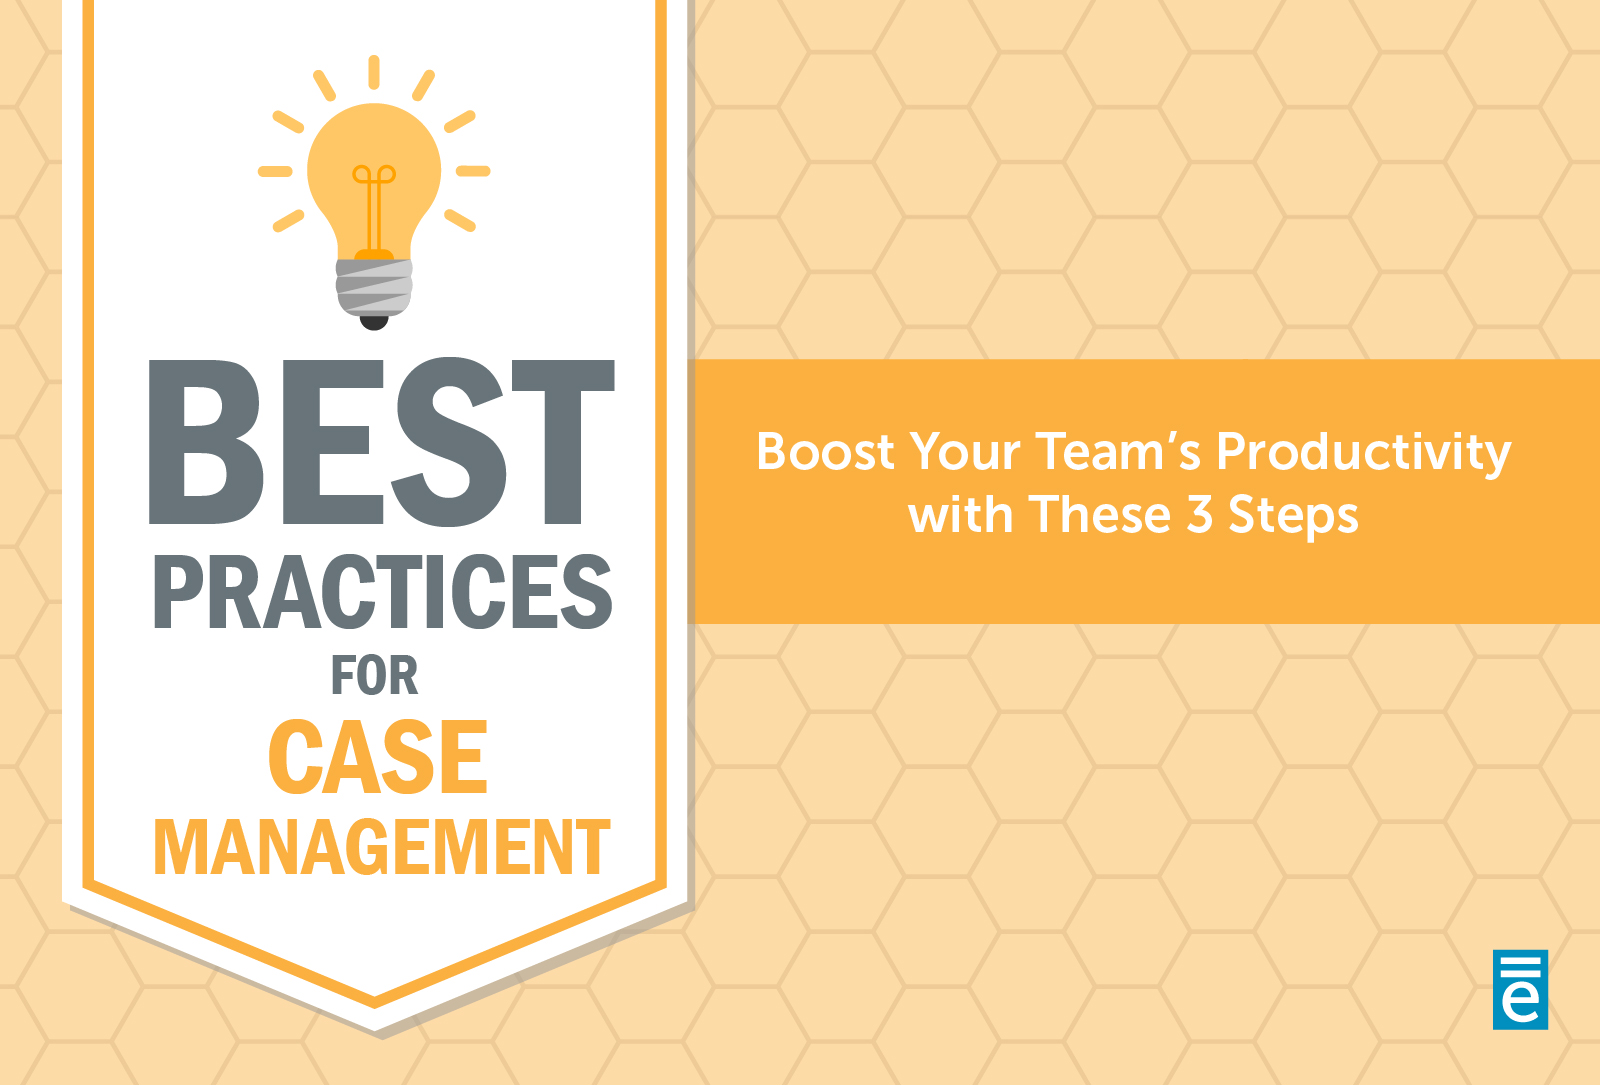 Boost Your Team's Productivity with These 3 Steps